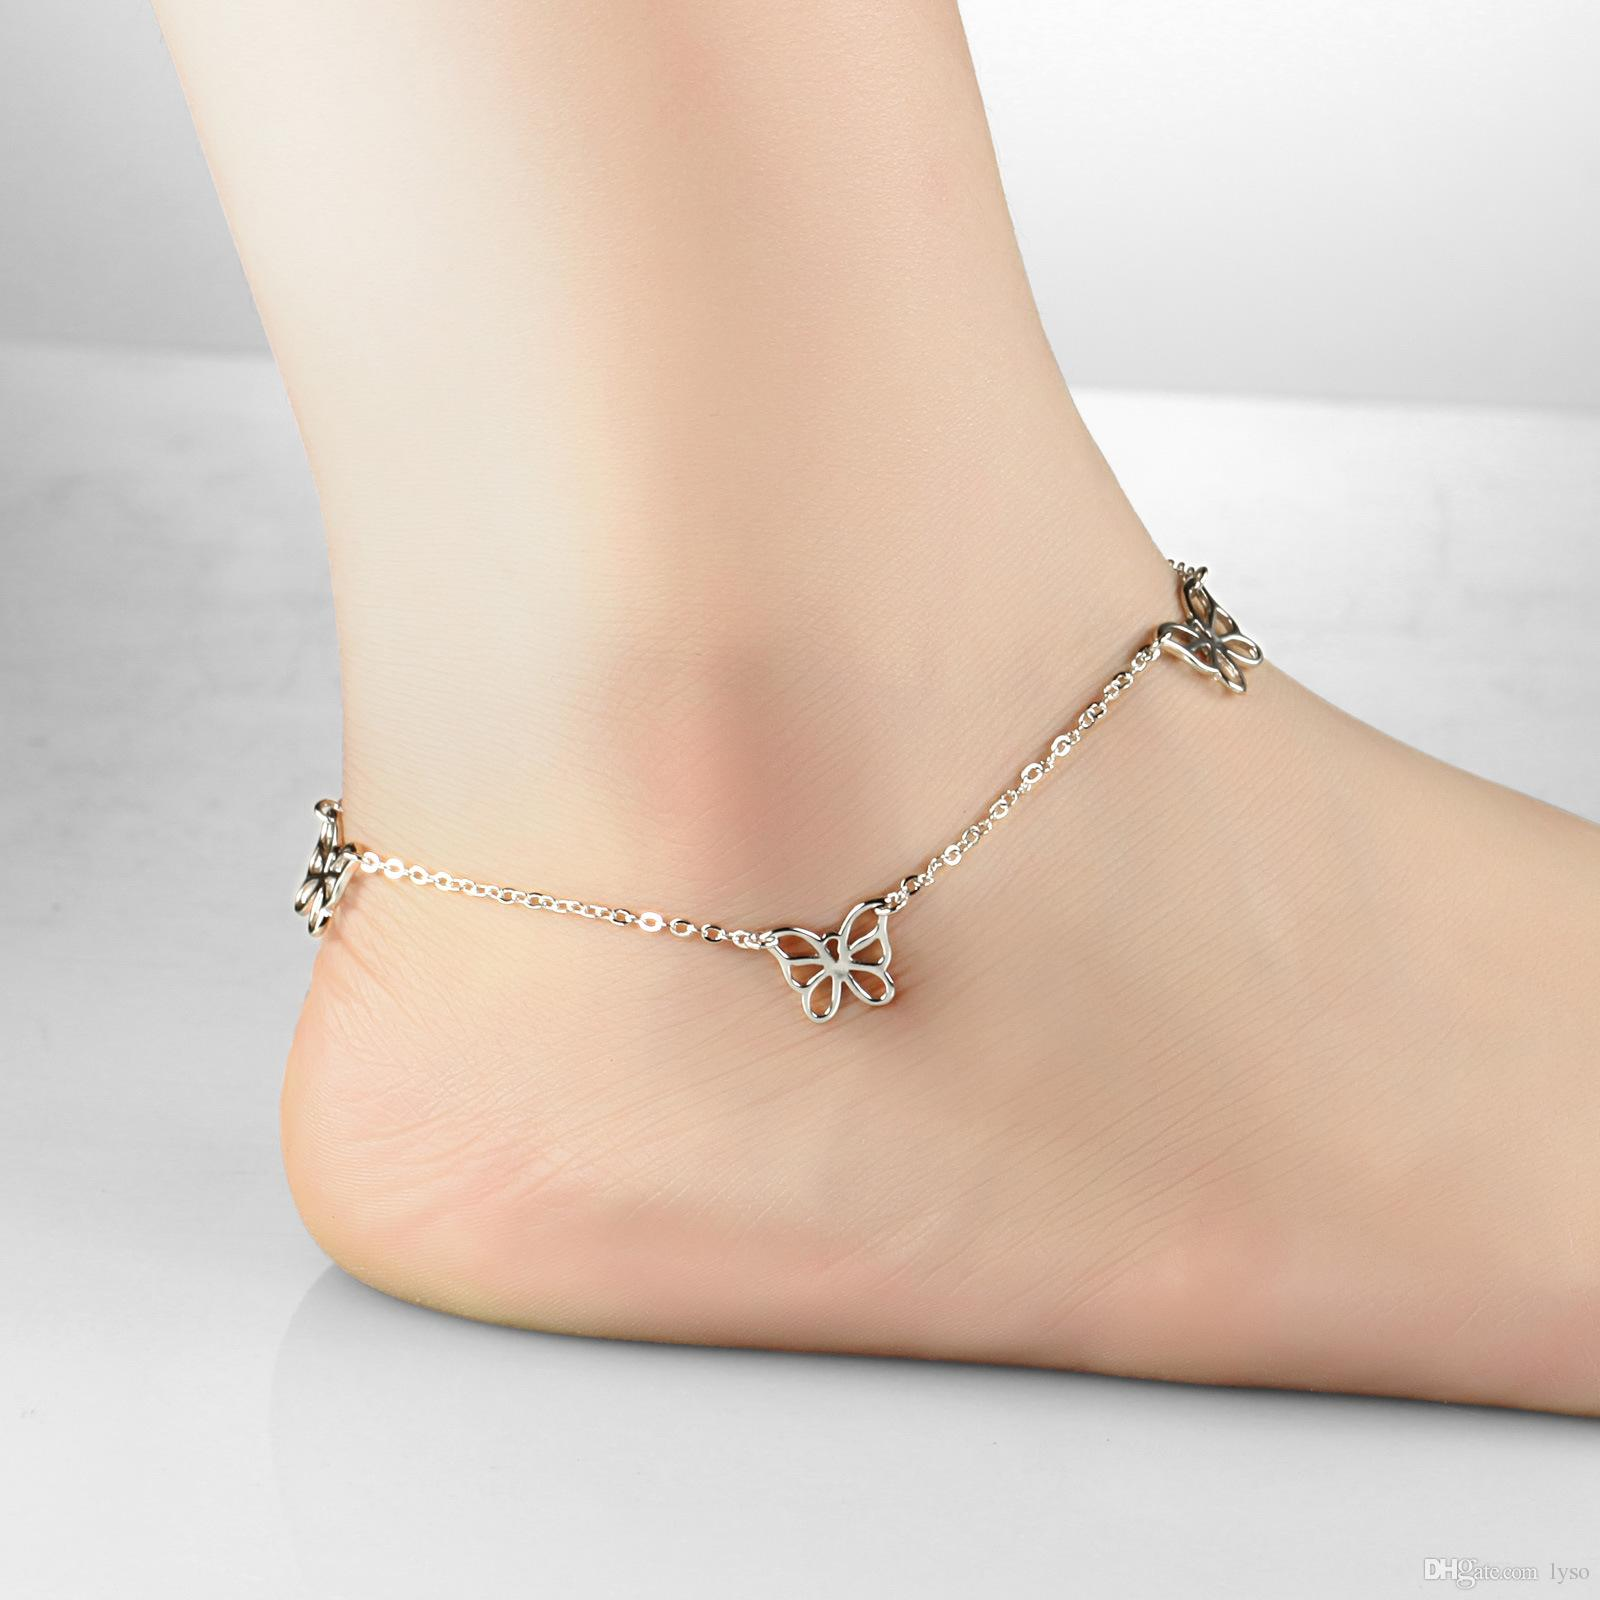 platinum anklets chain cube ankle gift beads jewelry vintage leg wihte bracelet anklet foot product bridal pendant expandable plated womens gold wedding store